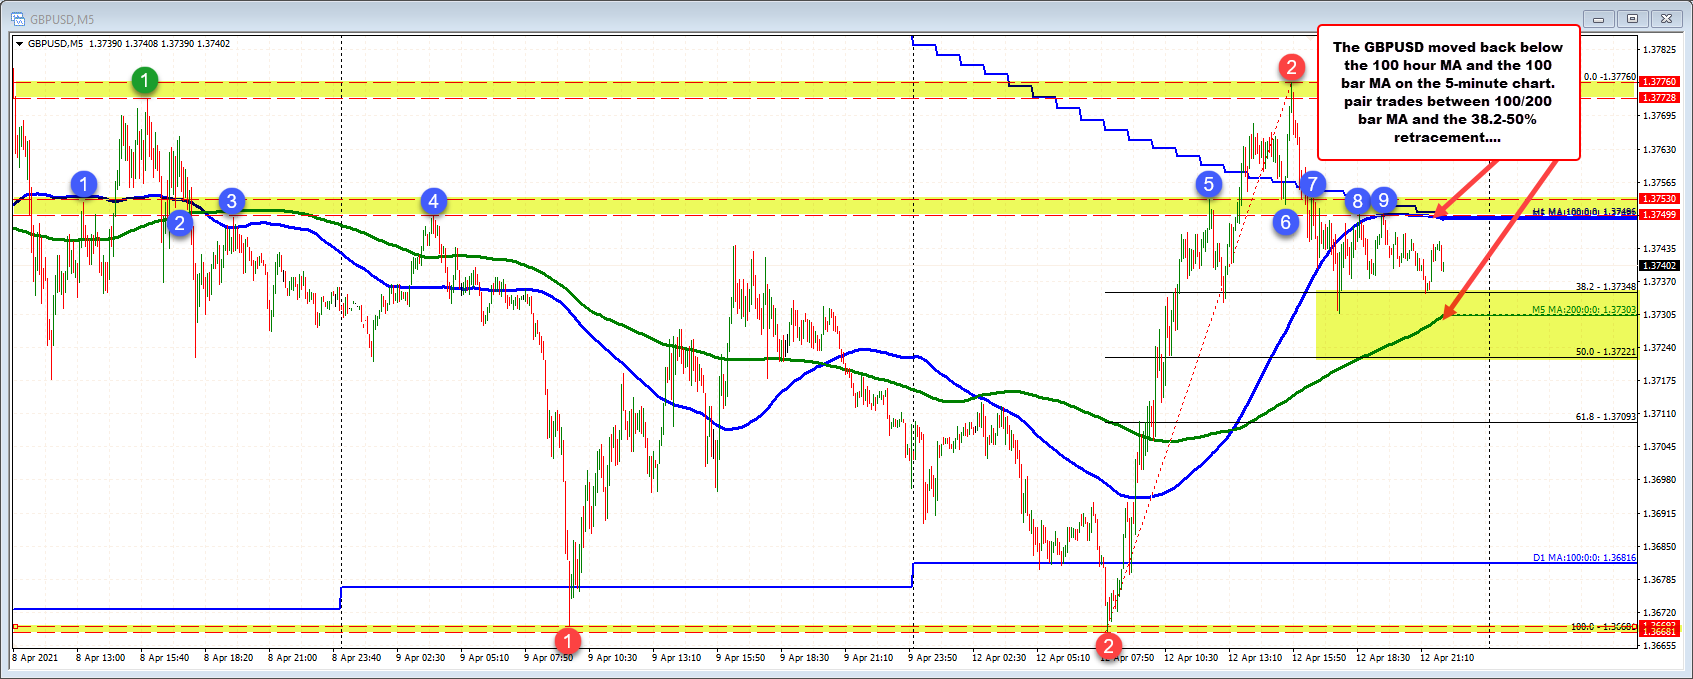 GBPUSD corrects into the close